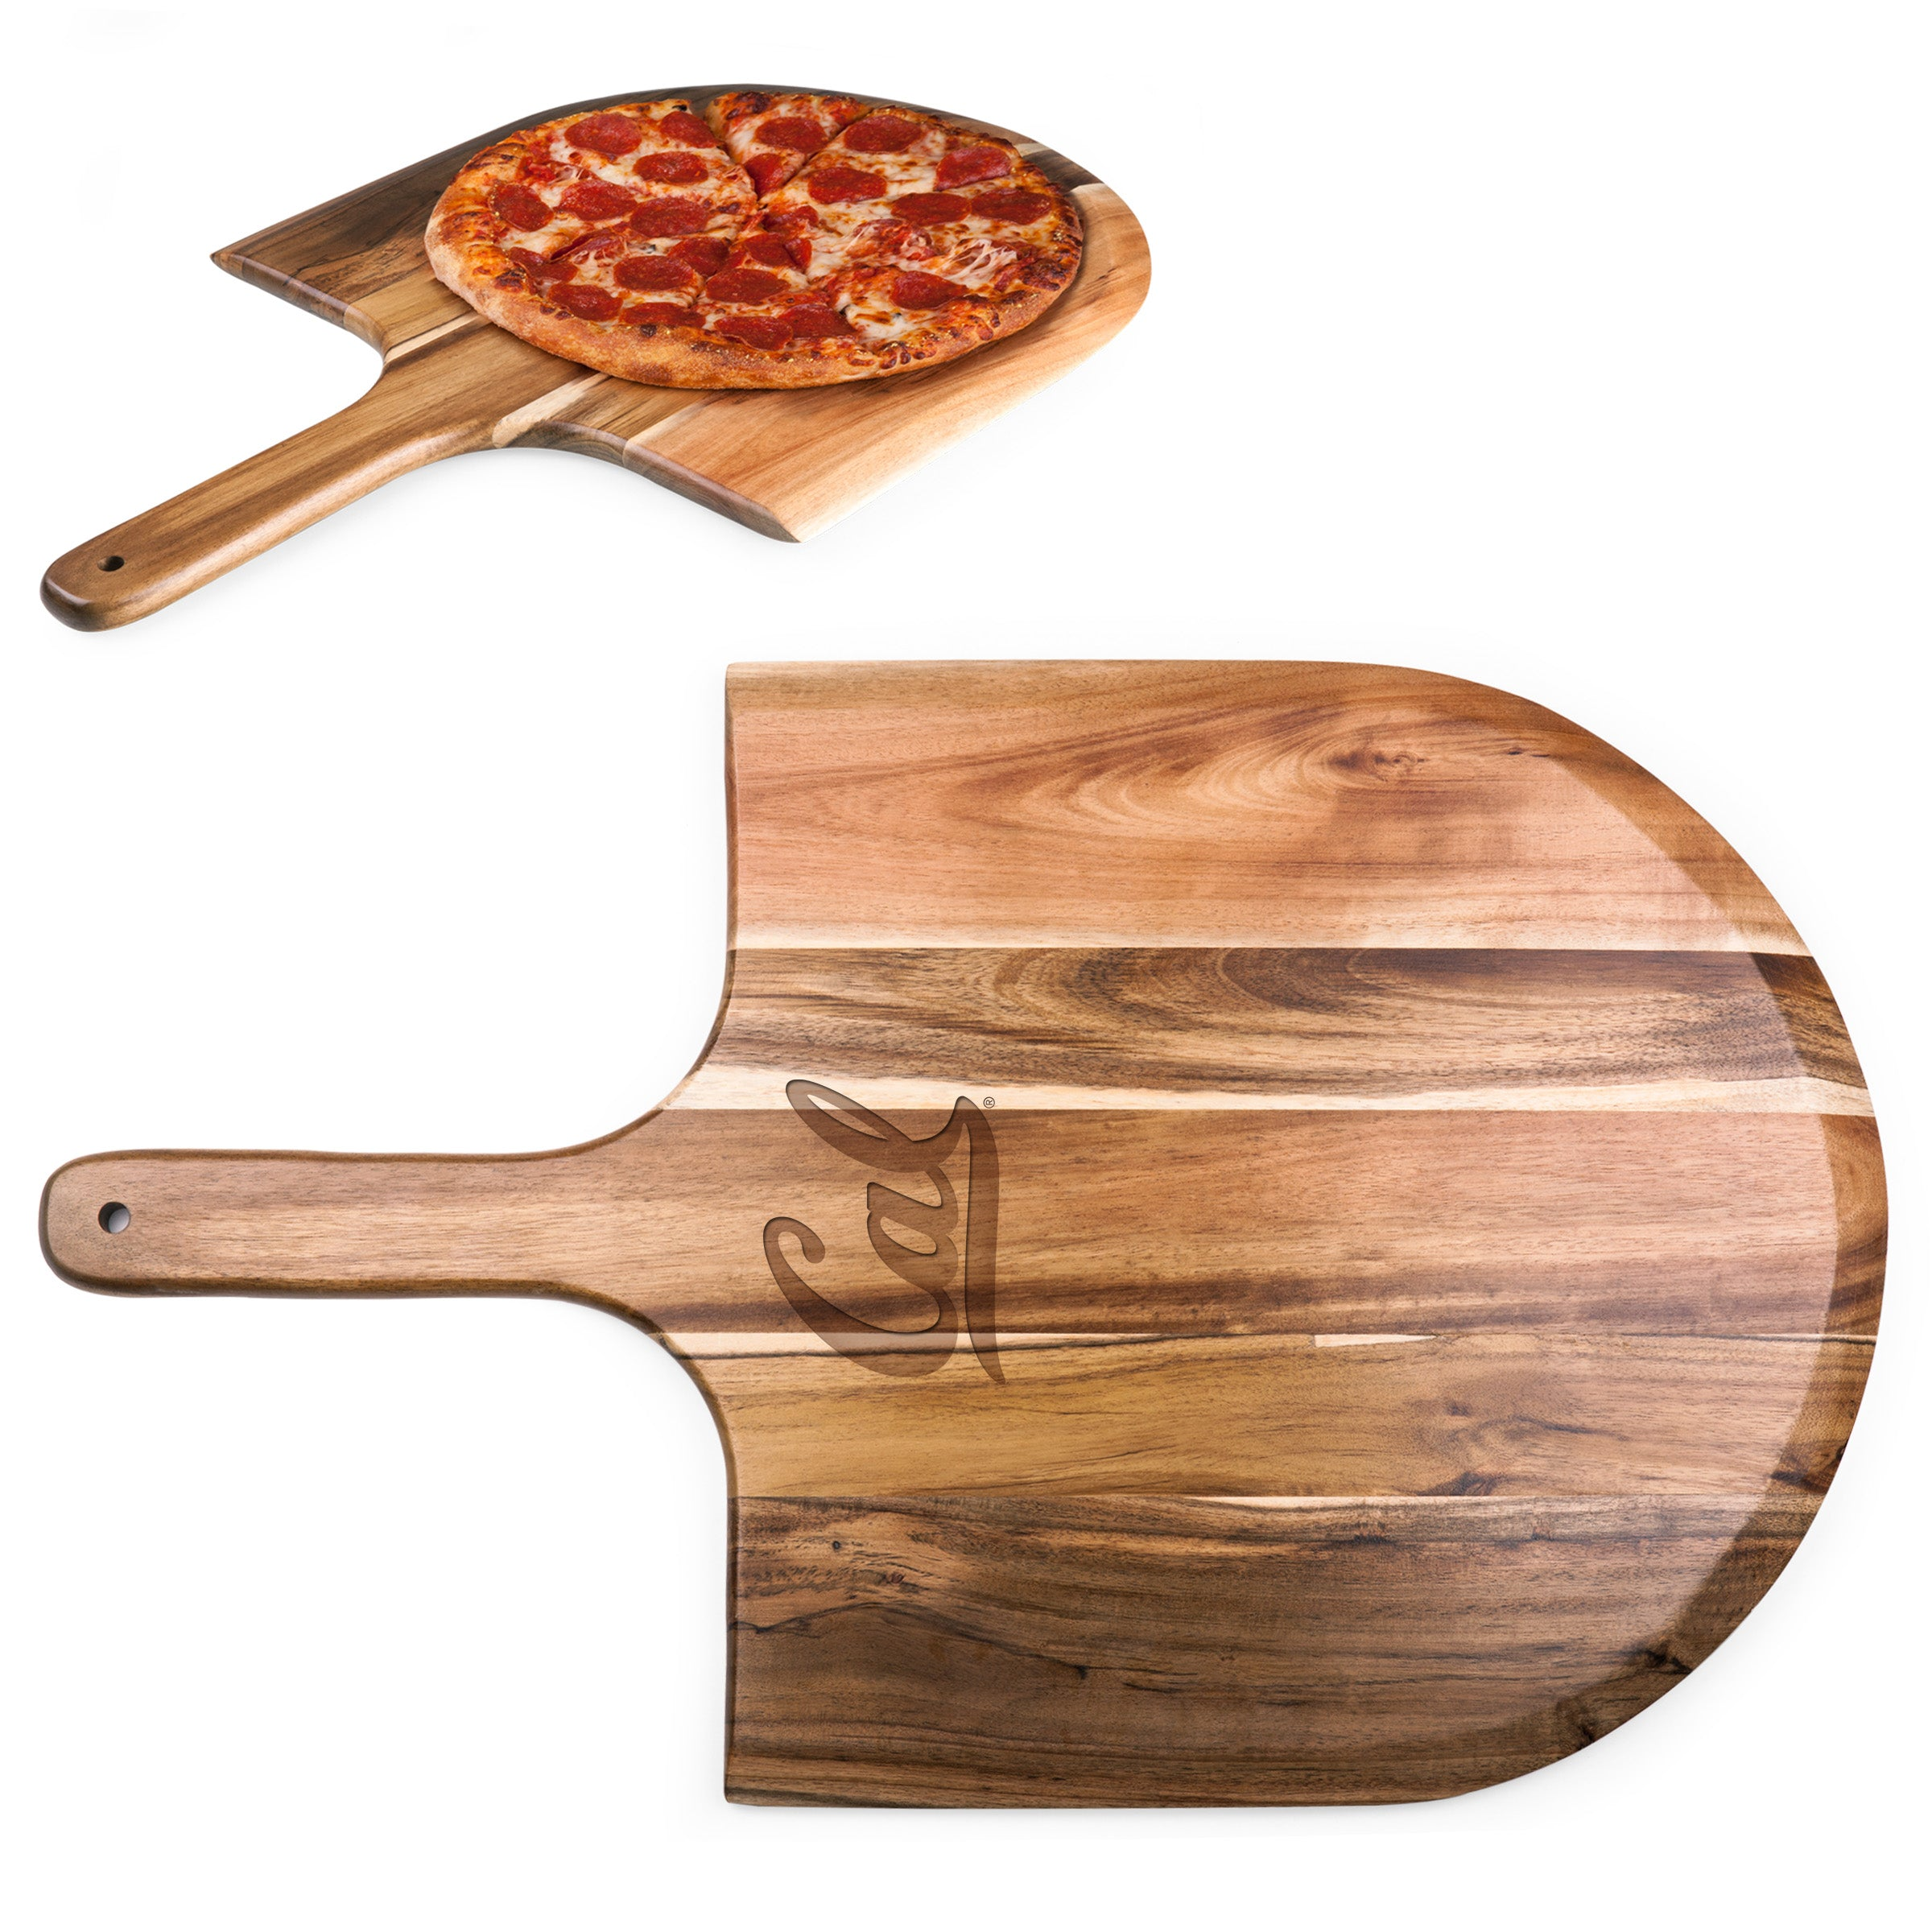 Cal Bears 'Acacia Pizza Peel' Serving Paddle-Natural Wood Laser Engraving